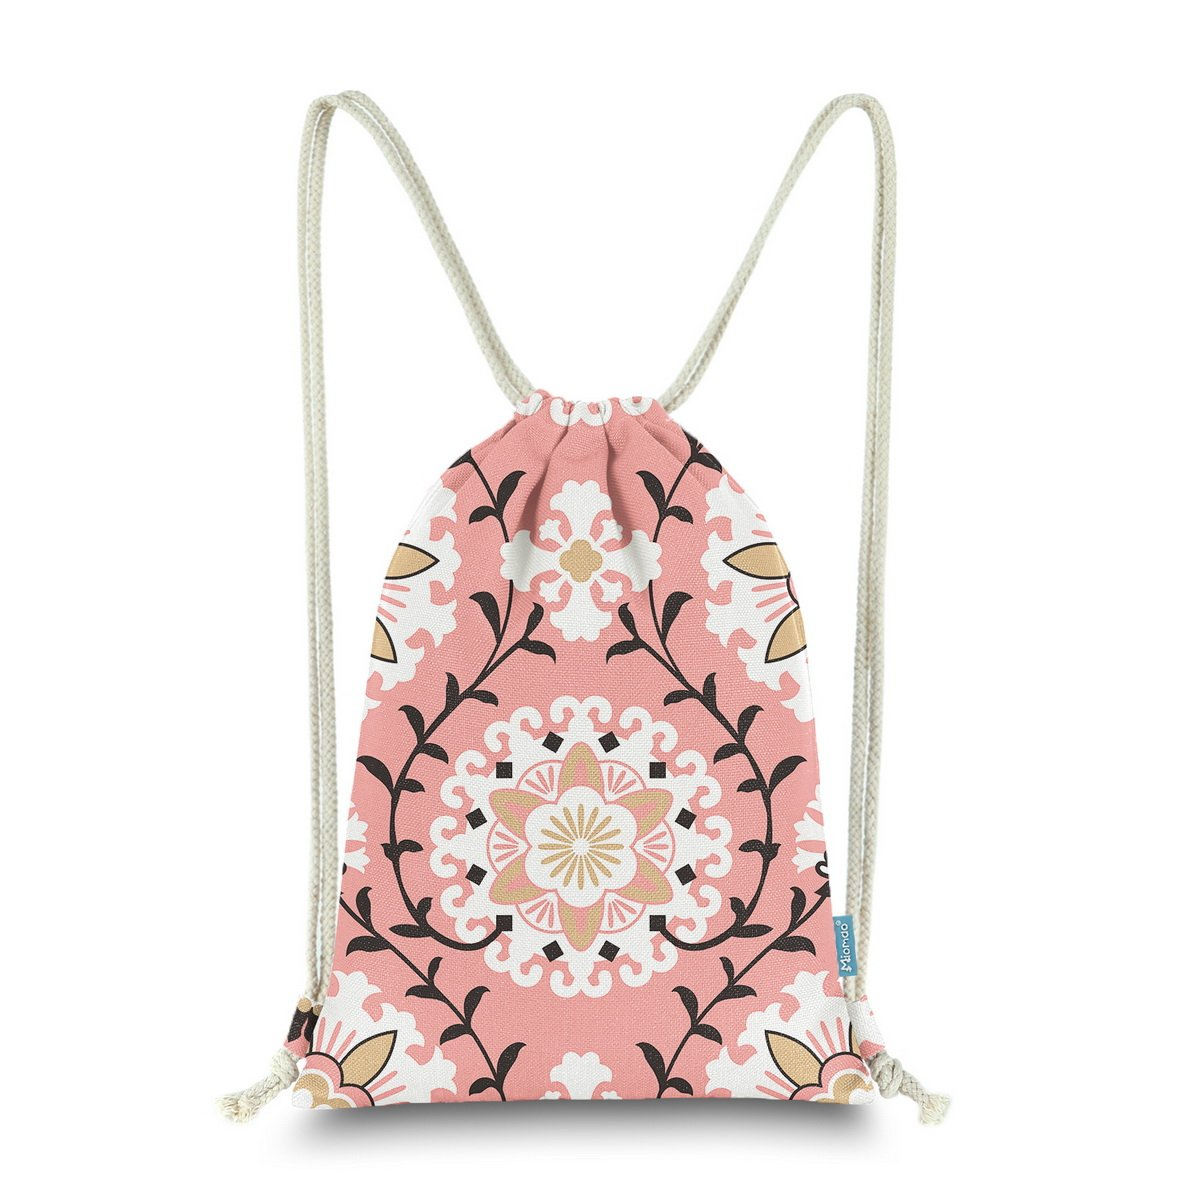 Miomao Drawstring Backpack Gym Sack Pack Dahlia Style Floral Sinch Sack Canvas String Bag Beach Cinch Pack For Men & Women, 13'' X 18'', Coral Pink